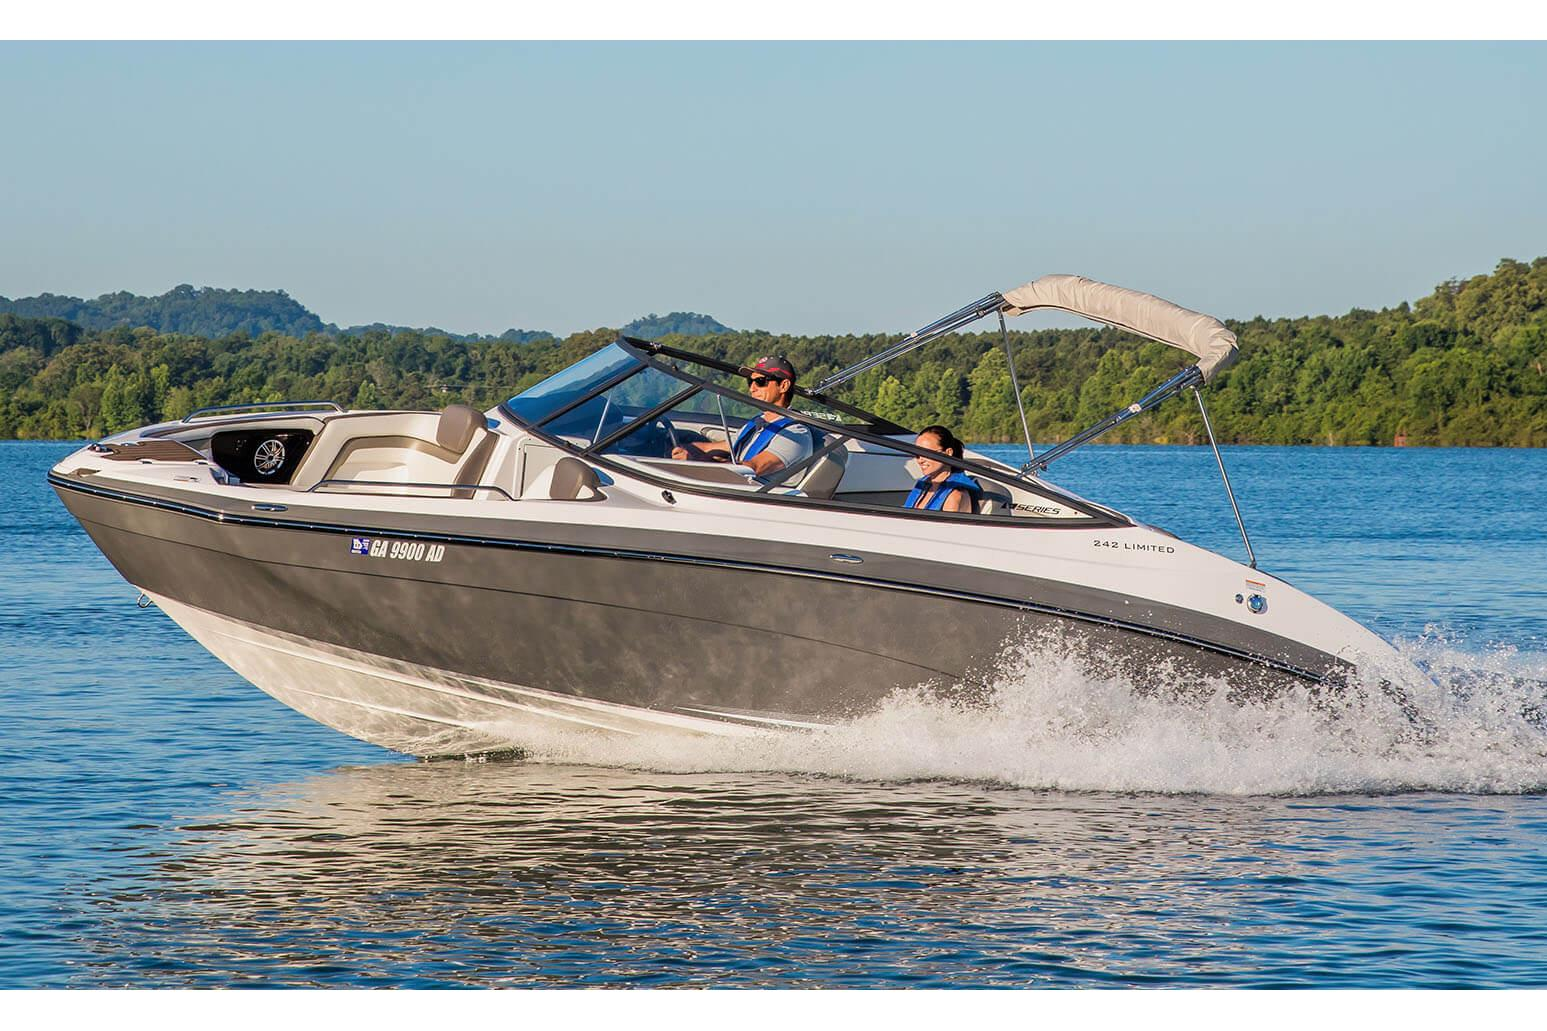 2017 Yamaha 242 Limited E-Series in Hampton Bays, New York